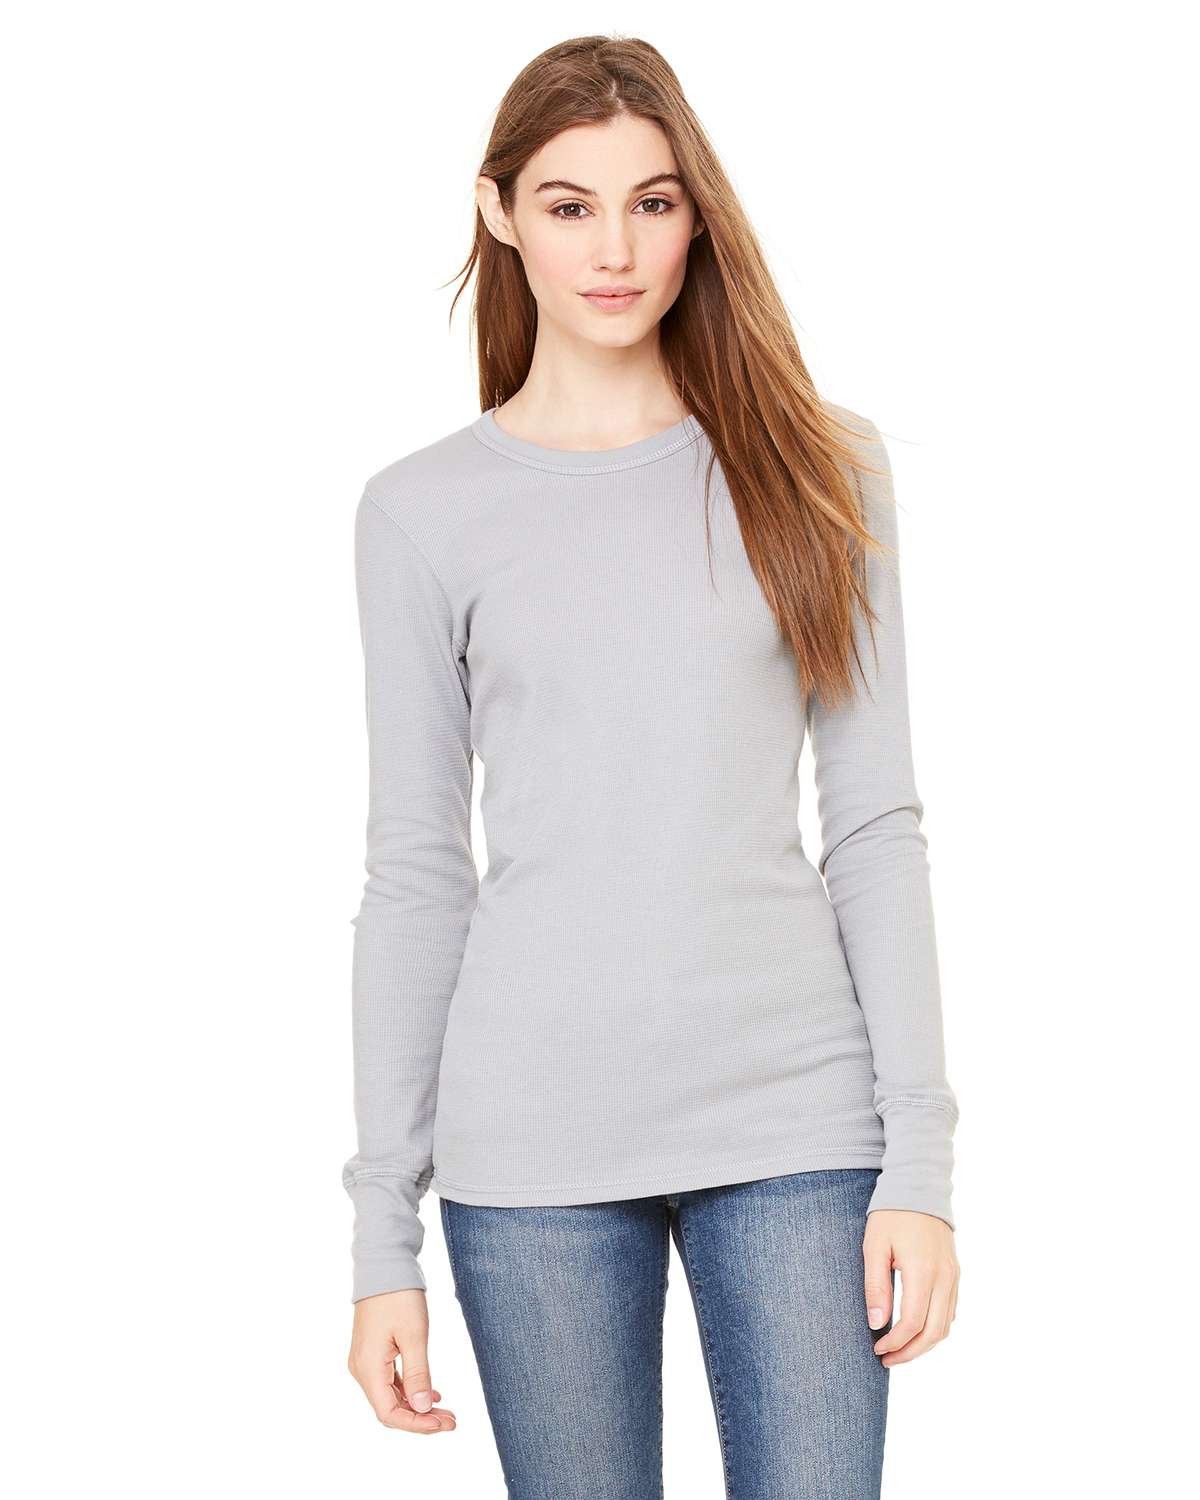 Bella B8500 Ladies' Thermal Long Sleeve Tee